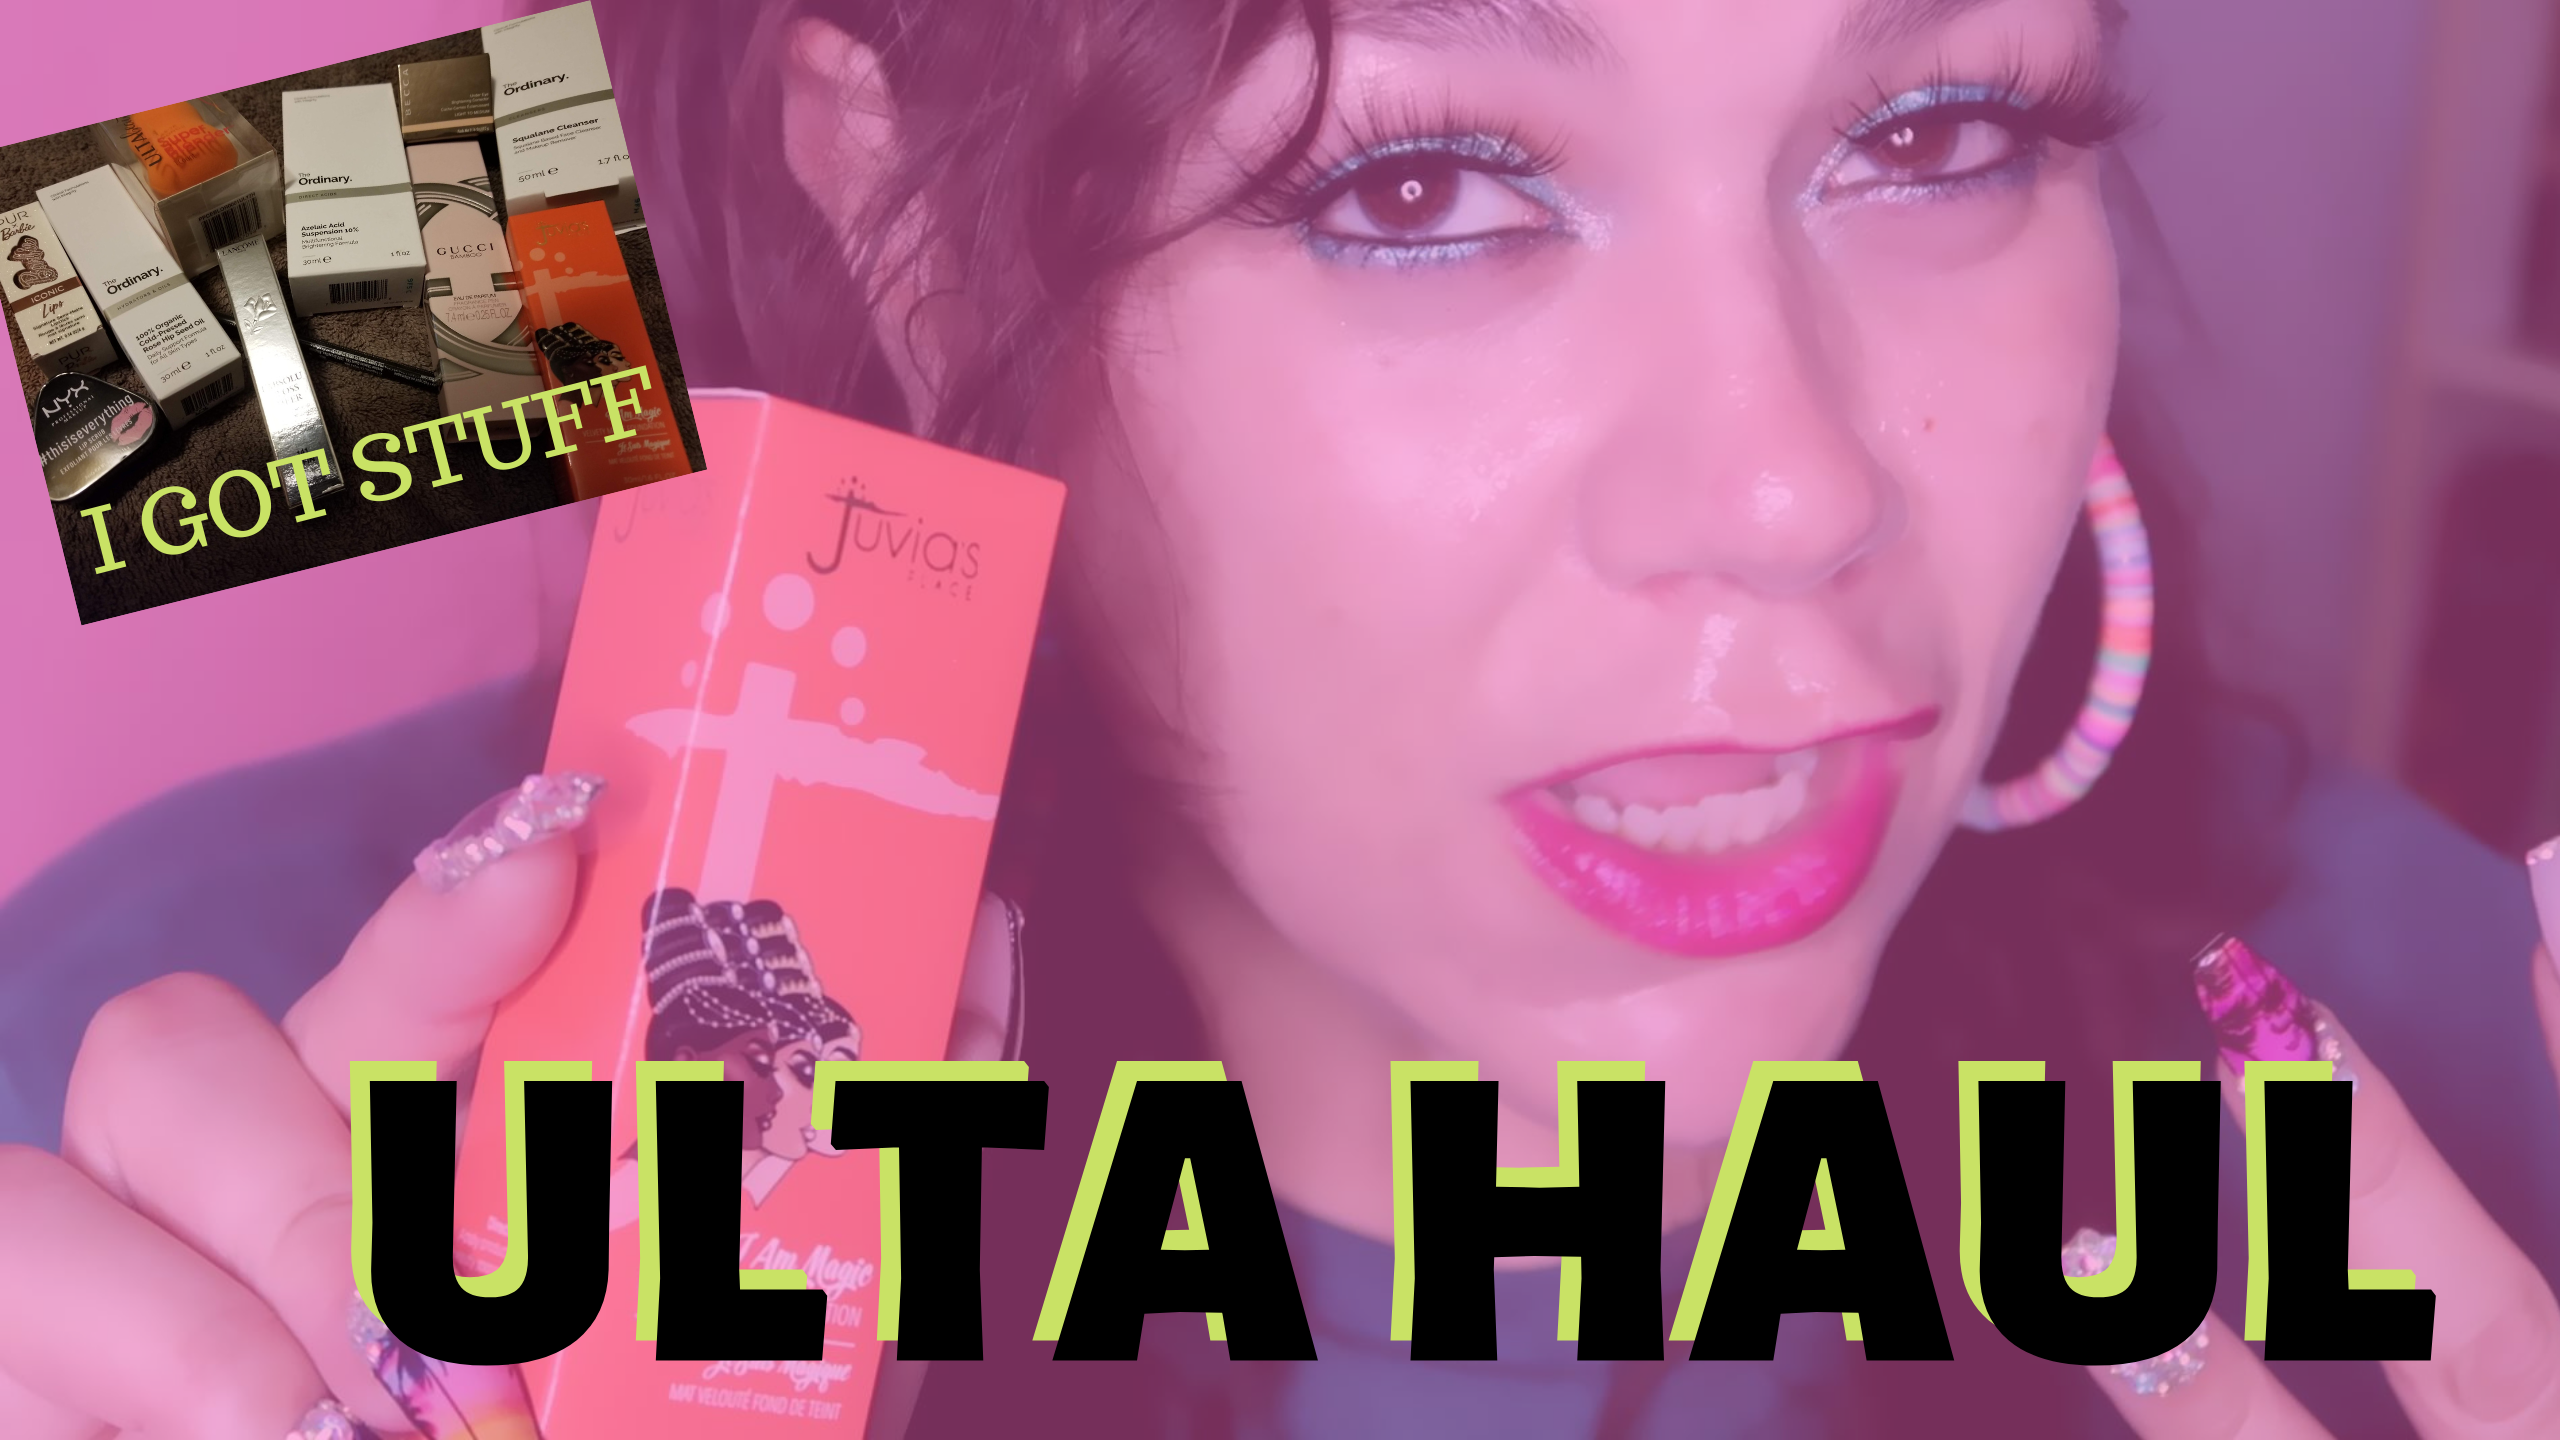 New ulta makeup haul video